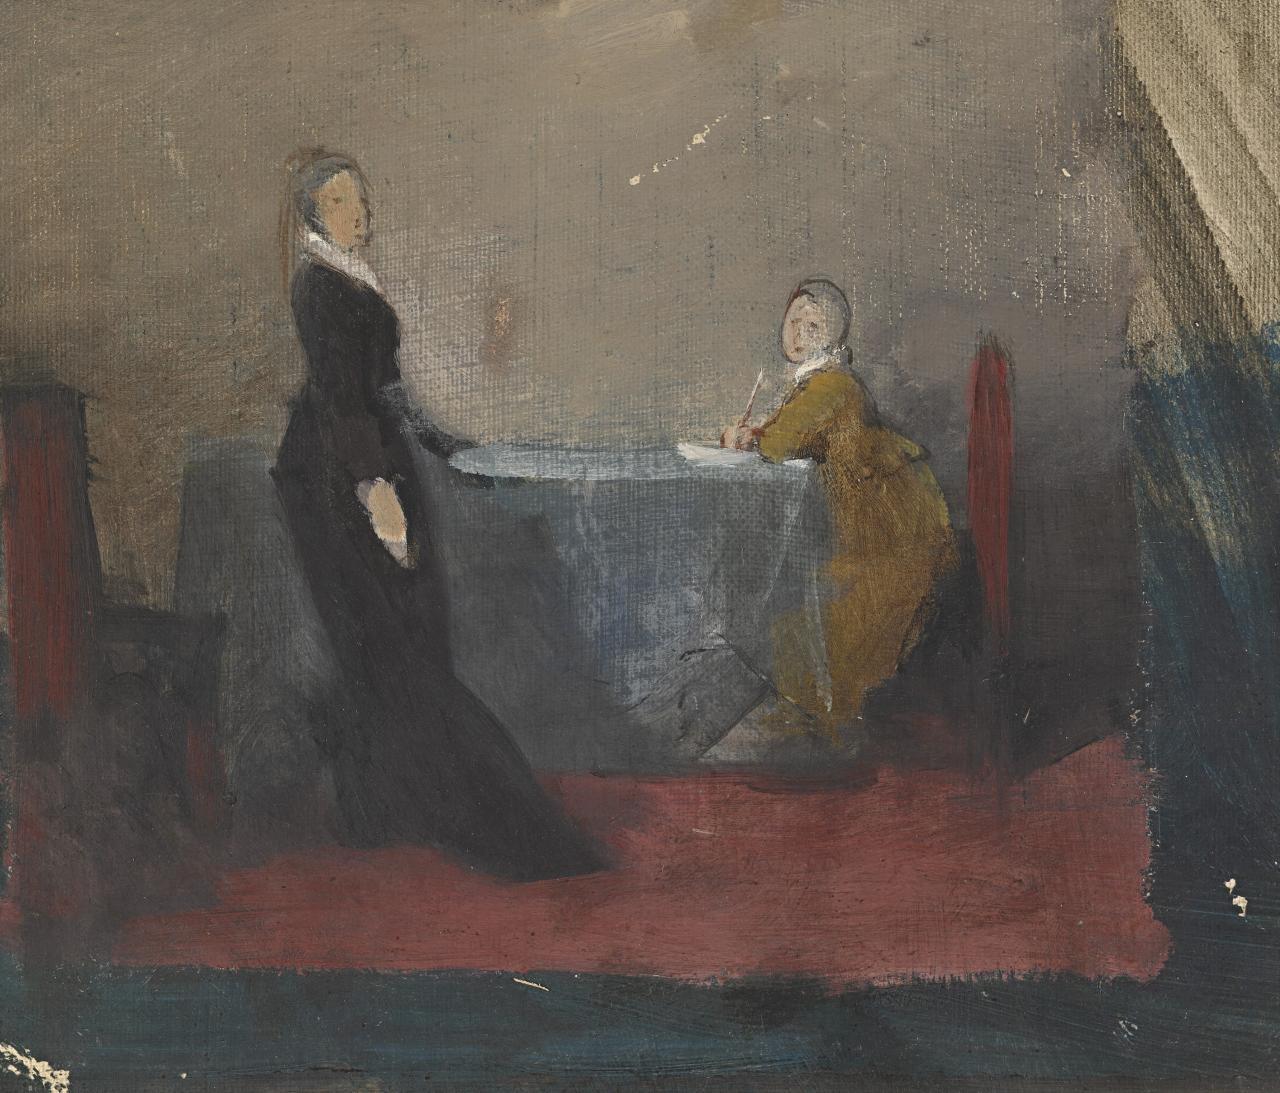 Study for picture of room and women figures